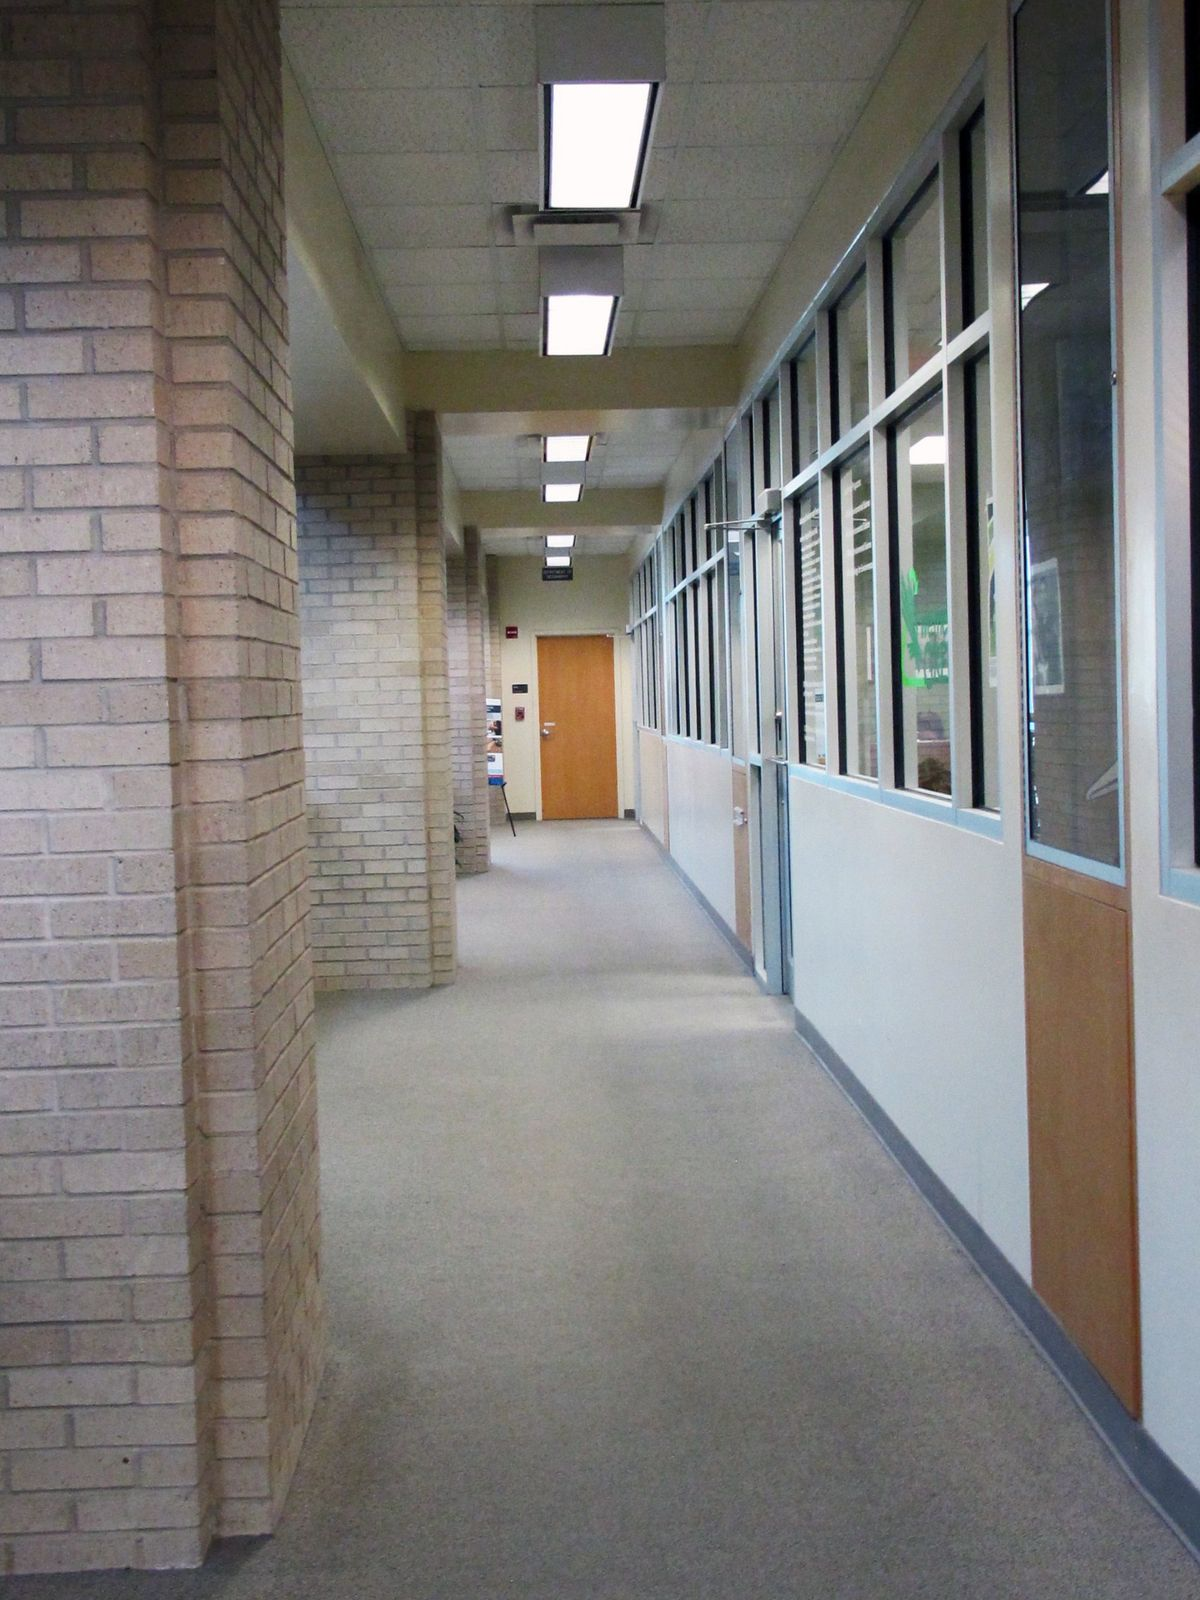 University of North Texas Schools Photo Video Shoot Location49.jpg